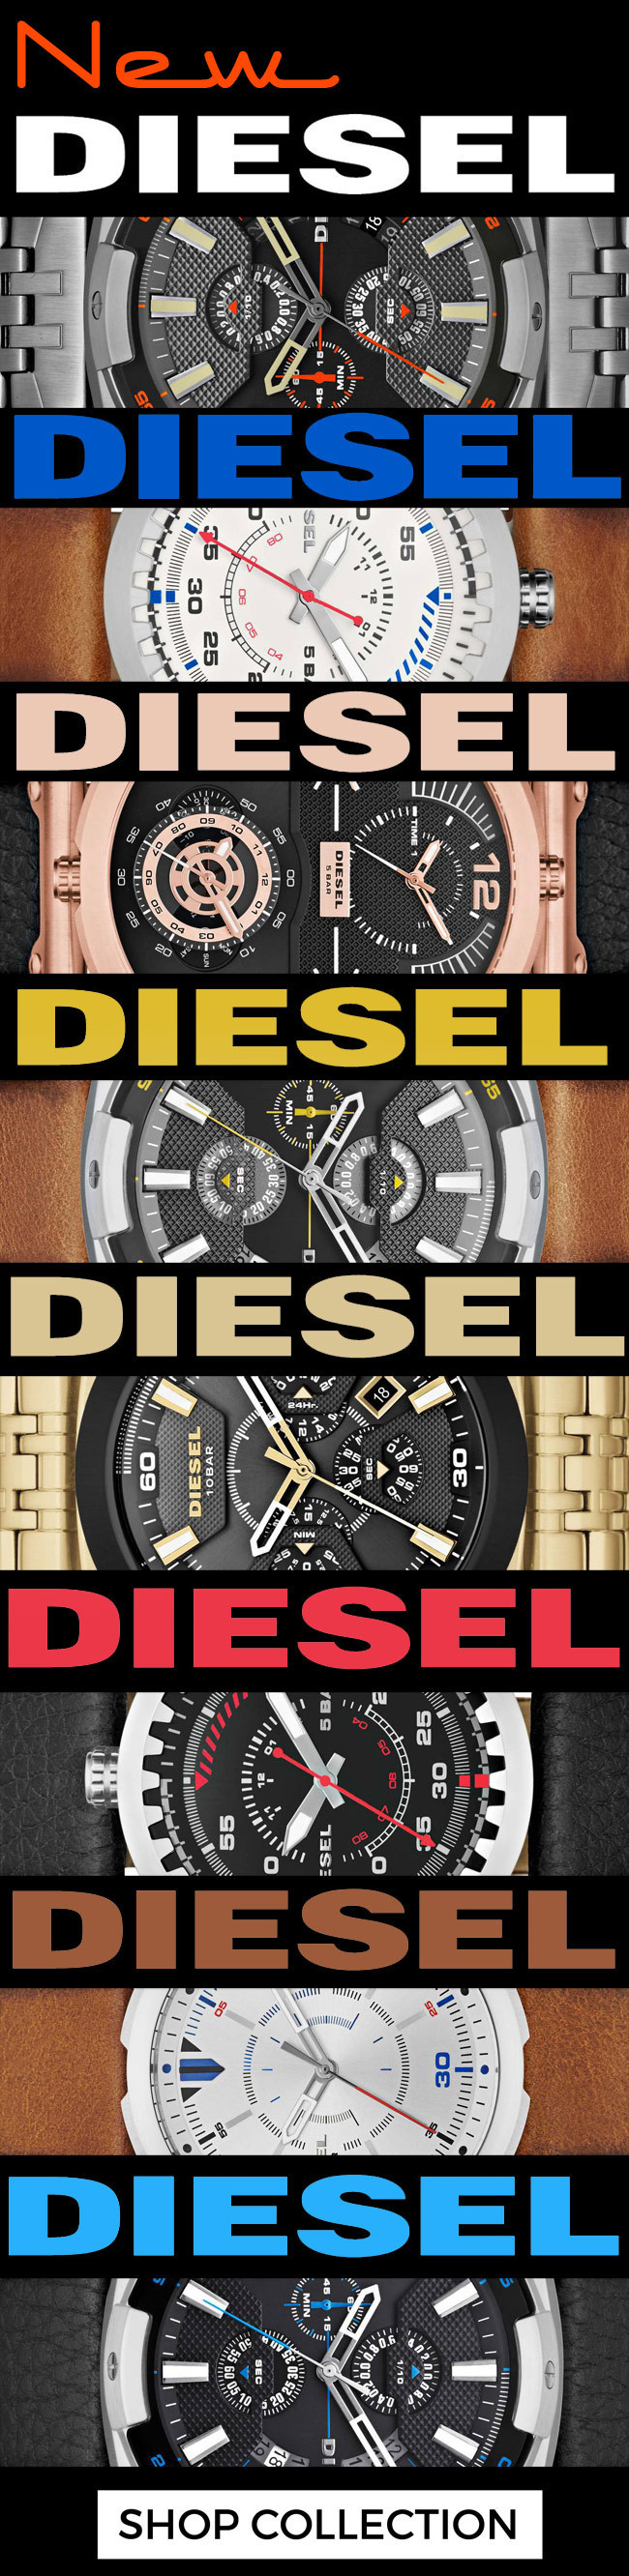 diesel-watches